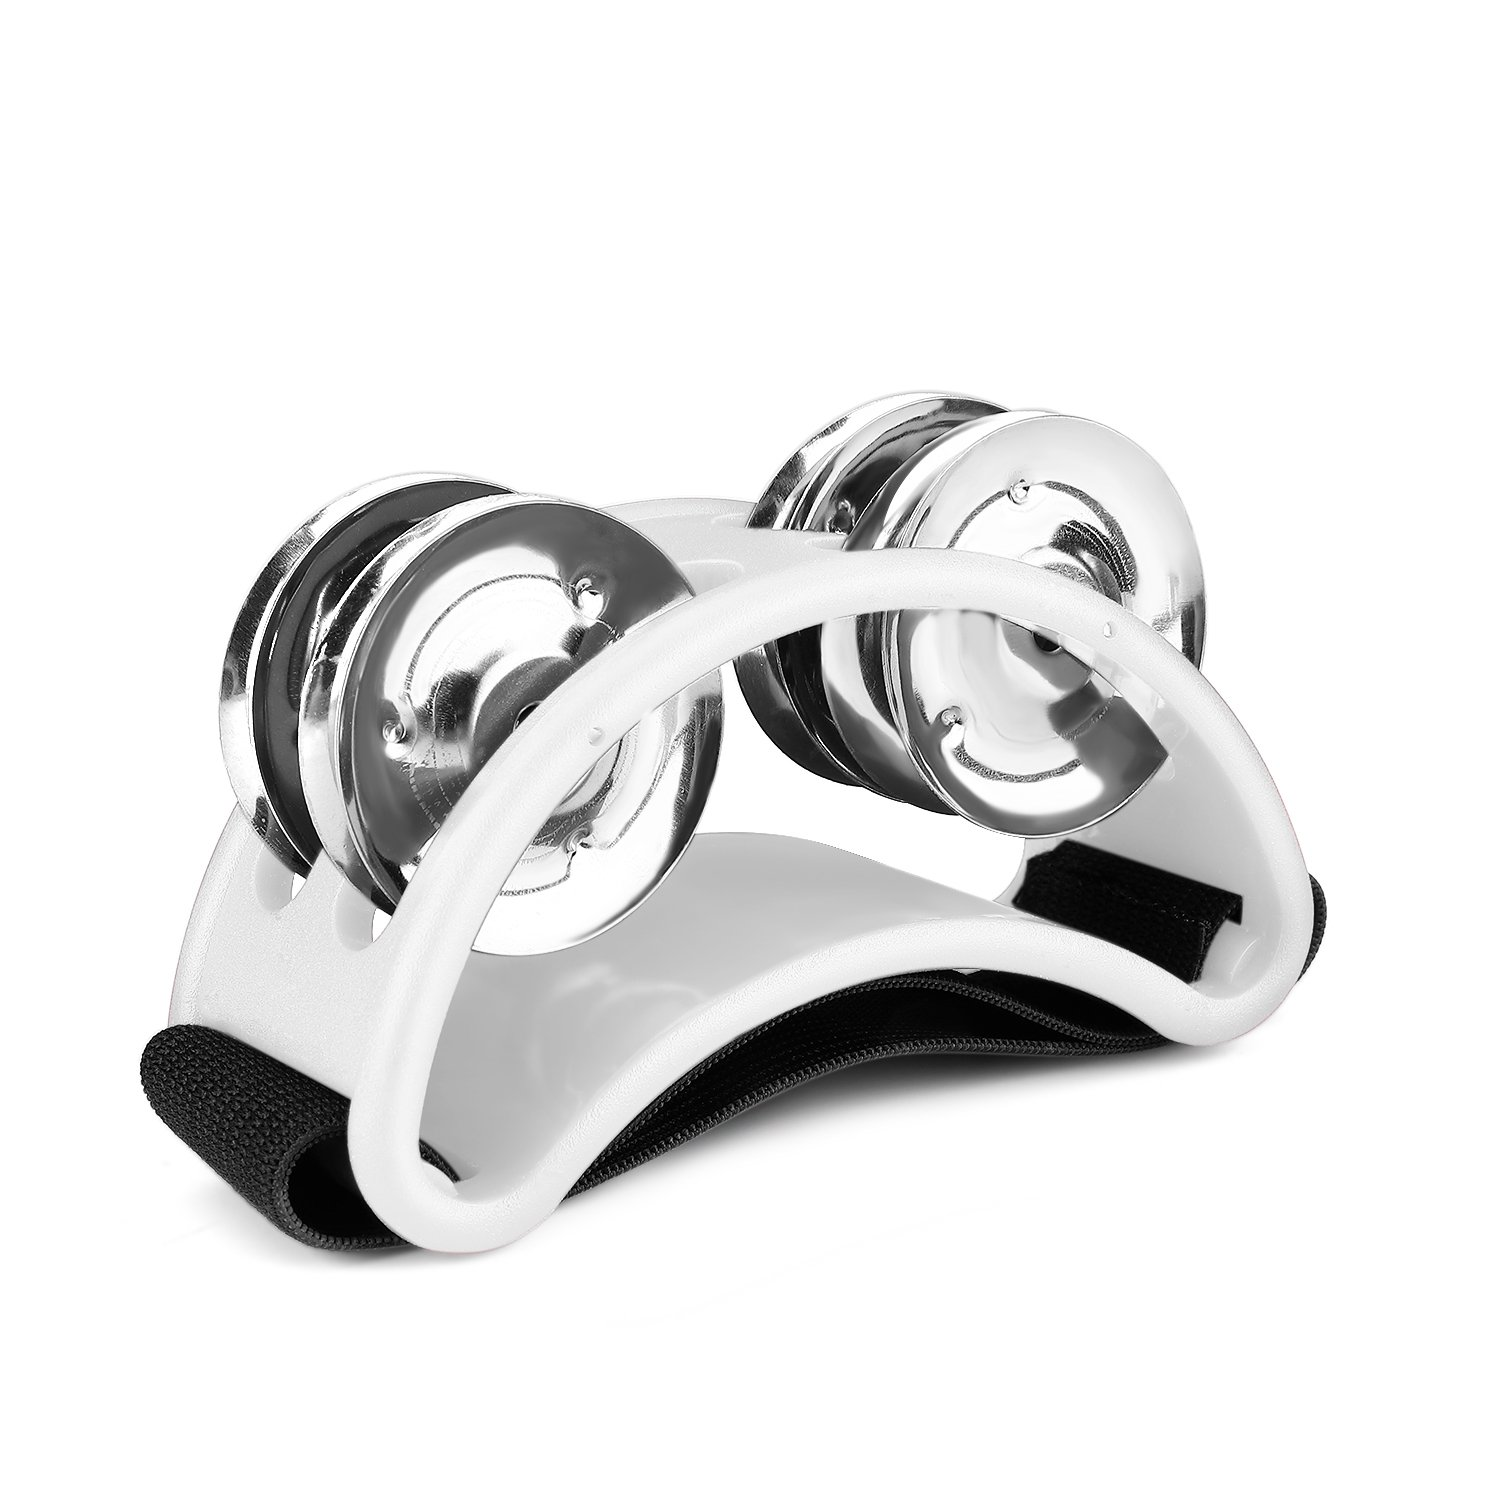 Flexzion Foot Tambourine Percussion with Double Row Steel Jingles - Foot Shaker Musical Instrument Drum for Kids KTV Party Shoes Toy Gift Singer Vocalists Cajon & Guitar Players (White)